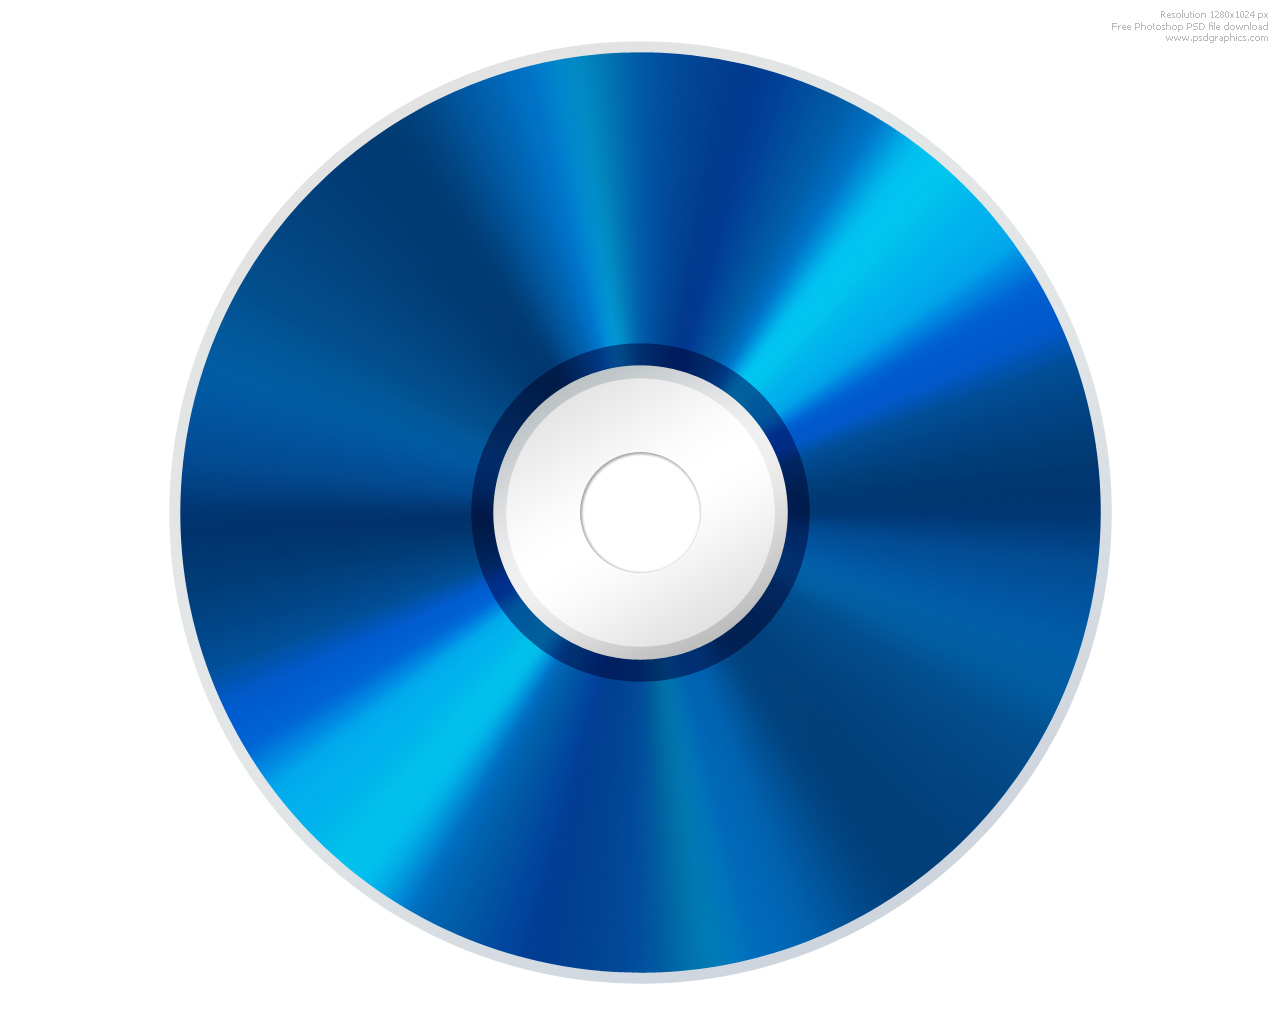 Blu-ray disc icon | PSDGraphics